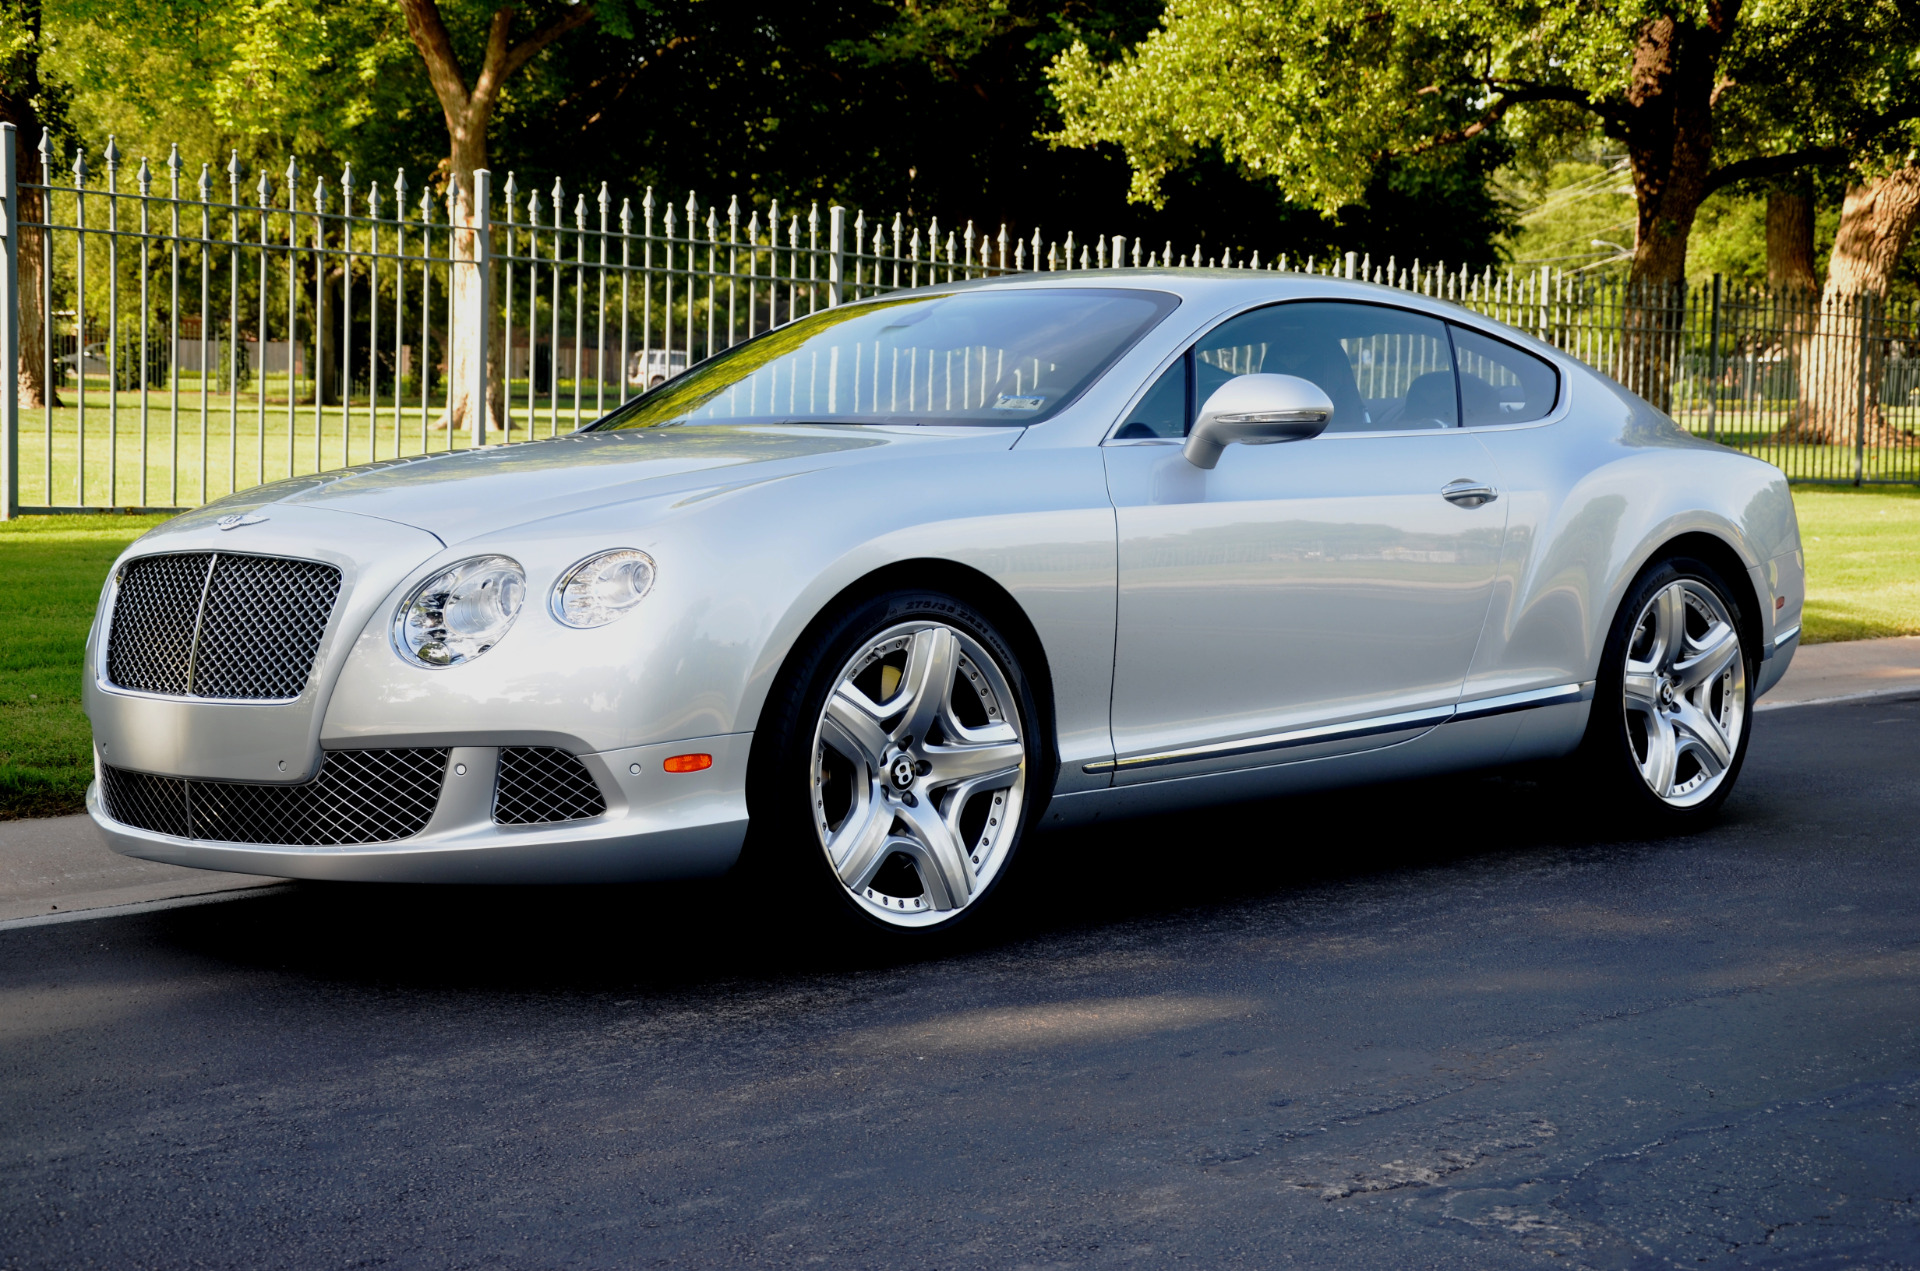 2012 bentley continental gt stock 116997 for sale near dallas tx tx bentley dealer. Black Bedroom Furniture Sets. Home Design Ideas